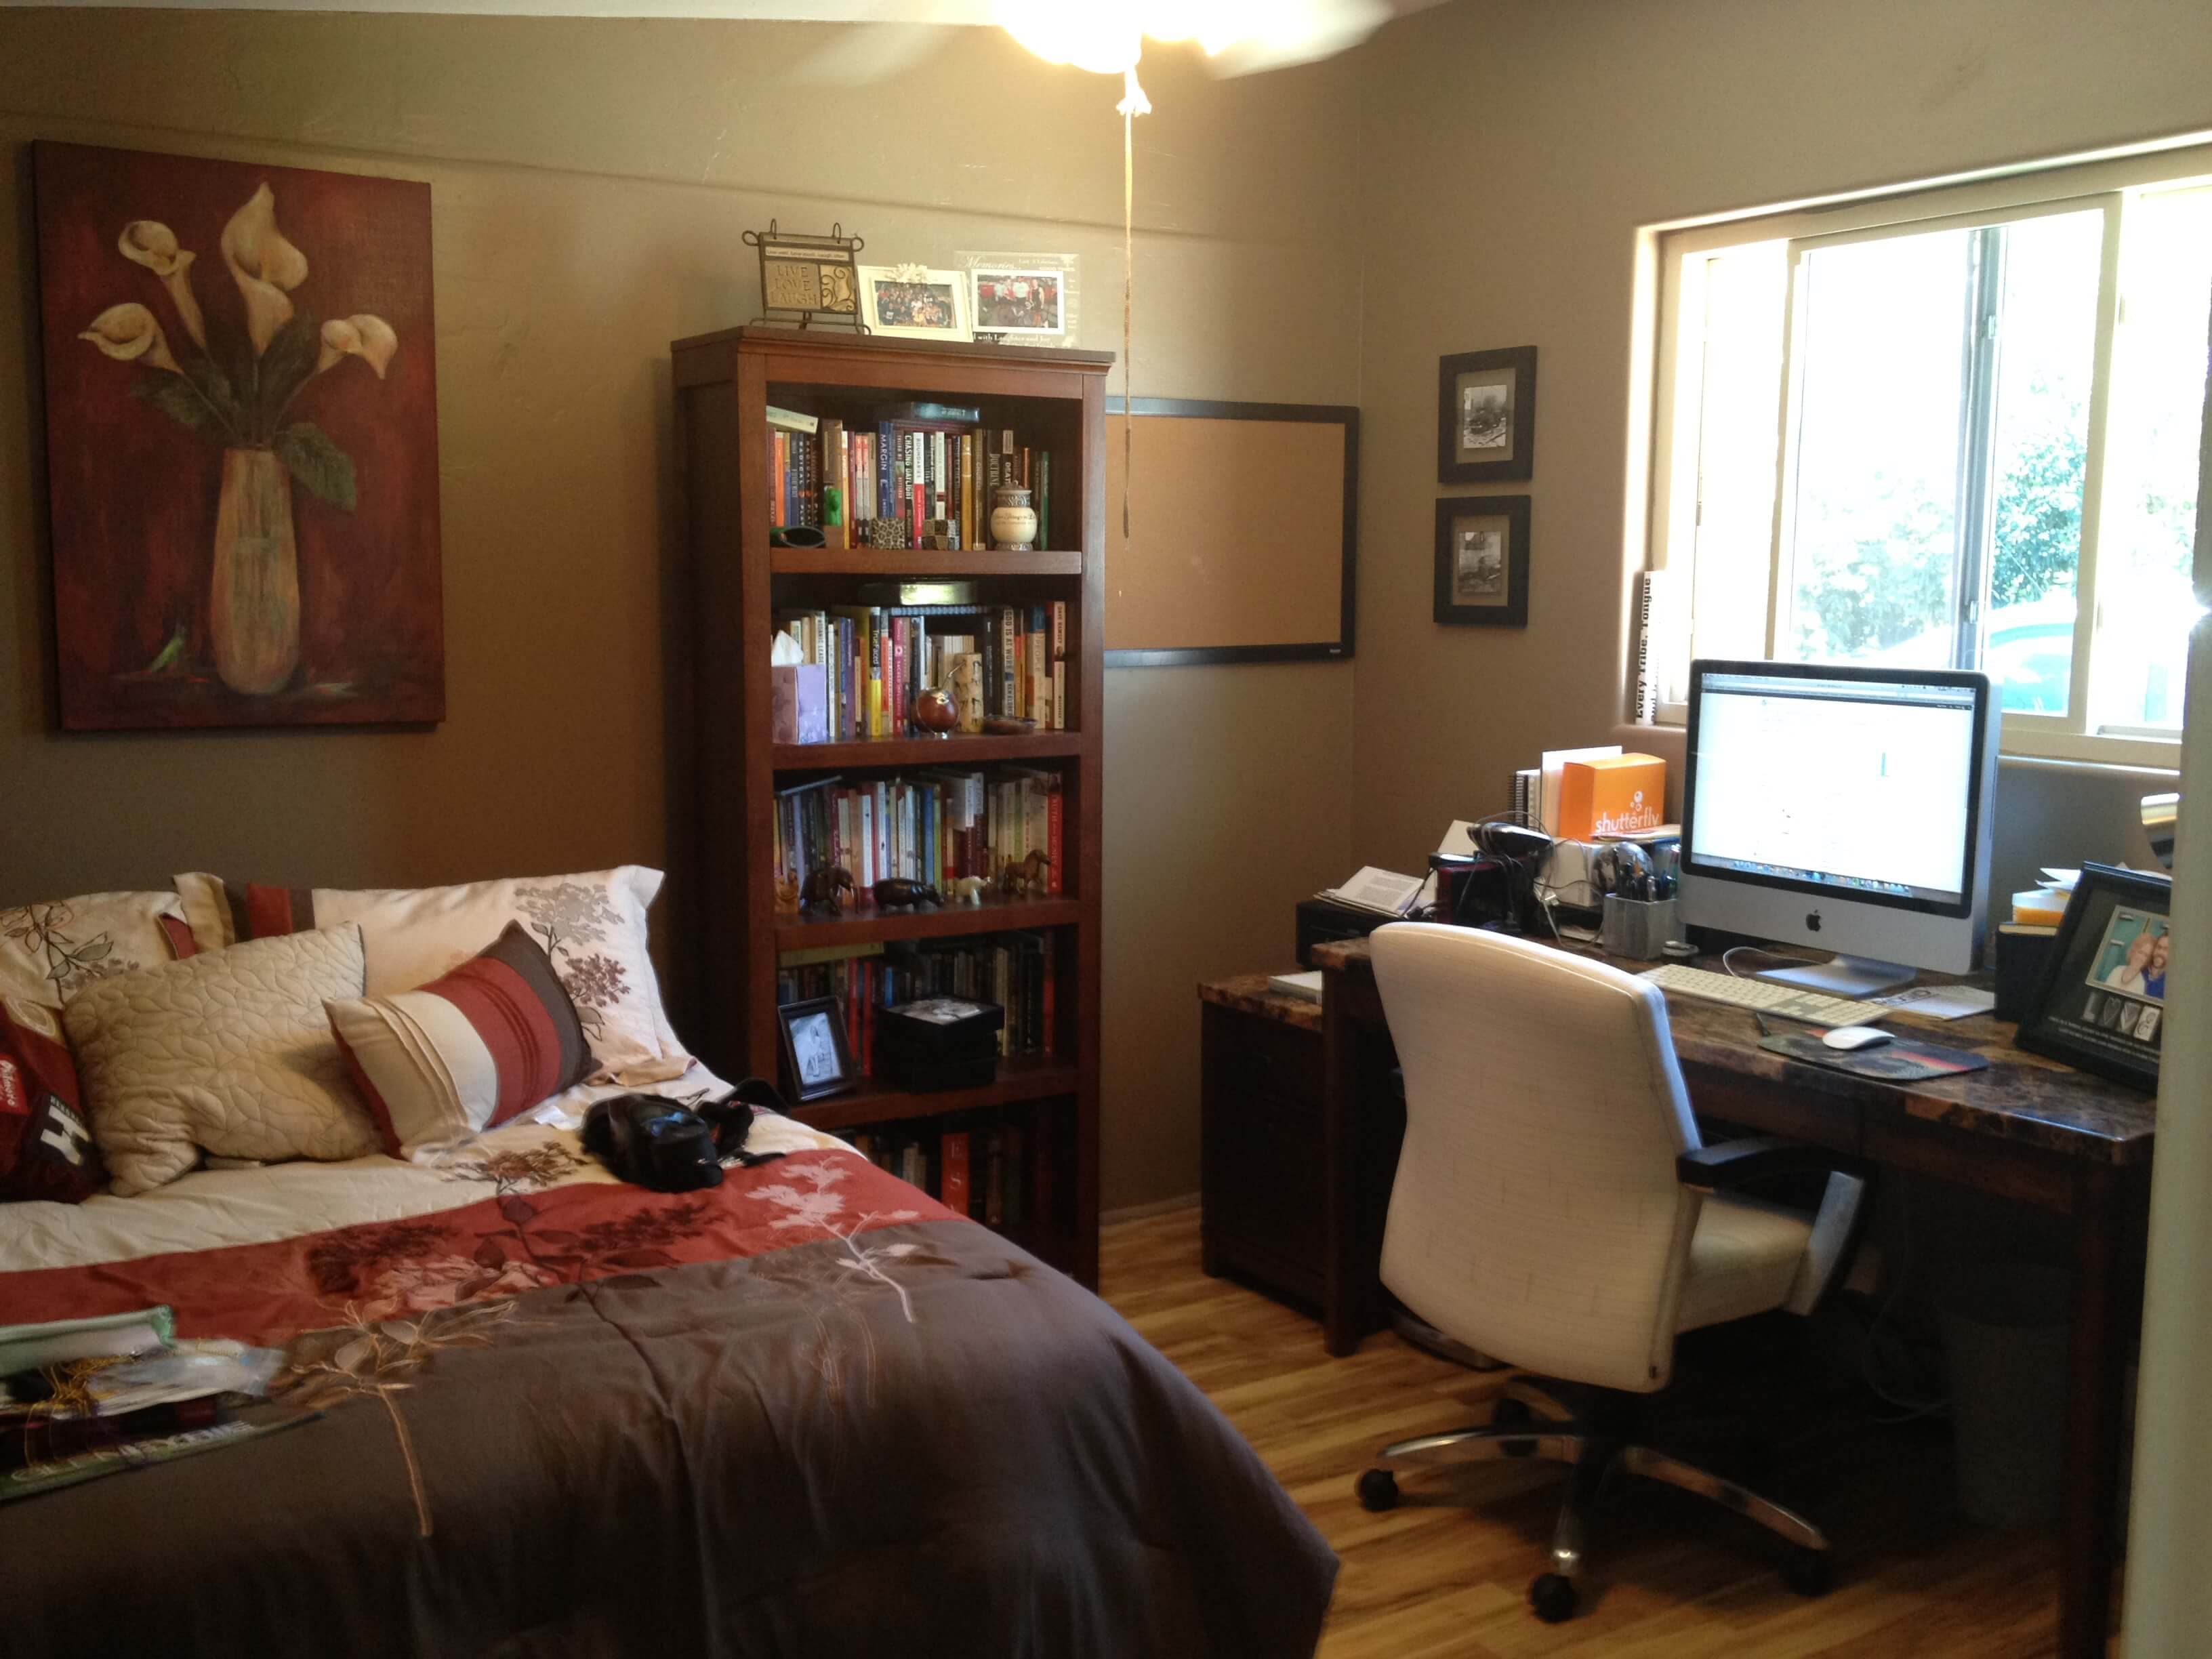 Bedrooms Office Space